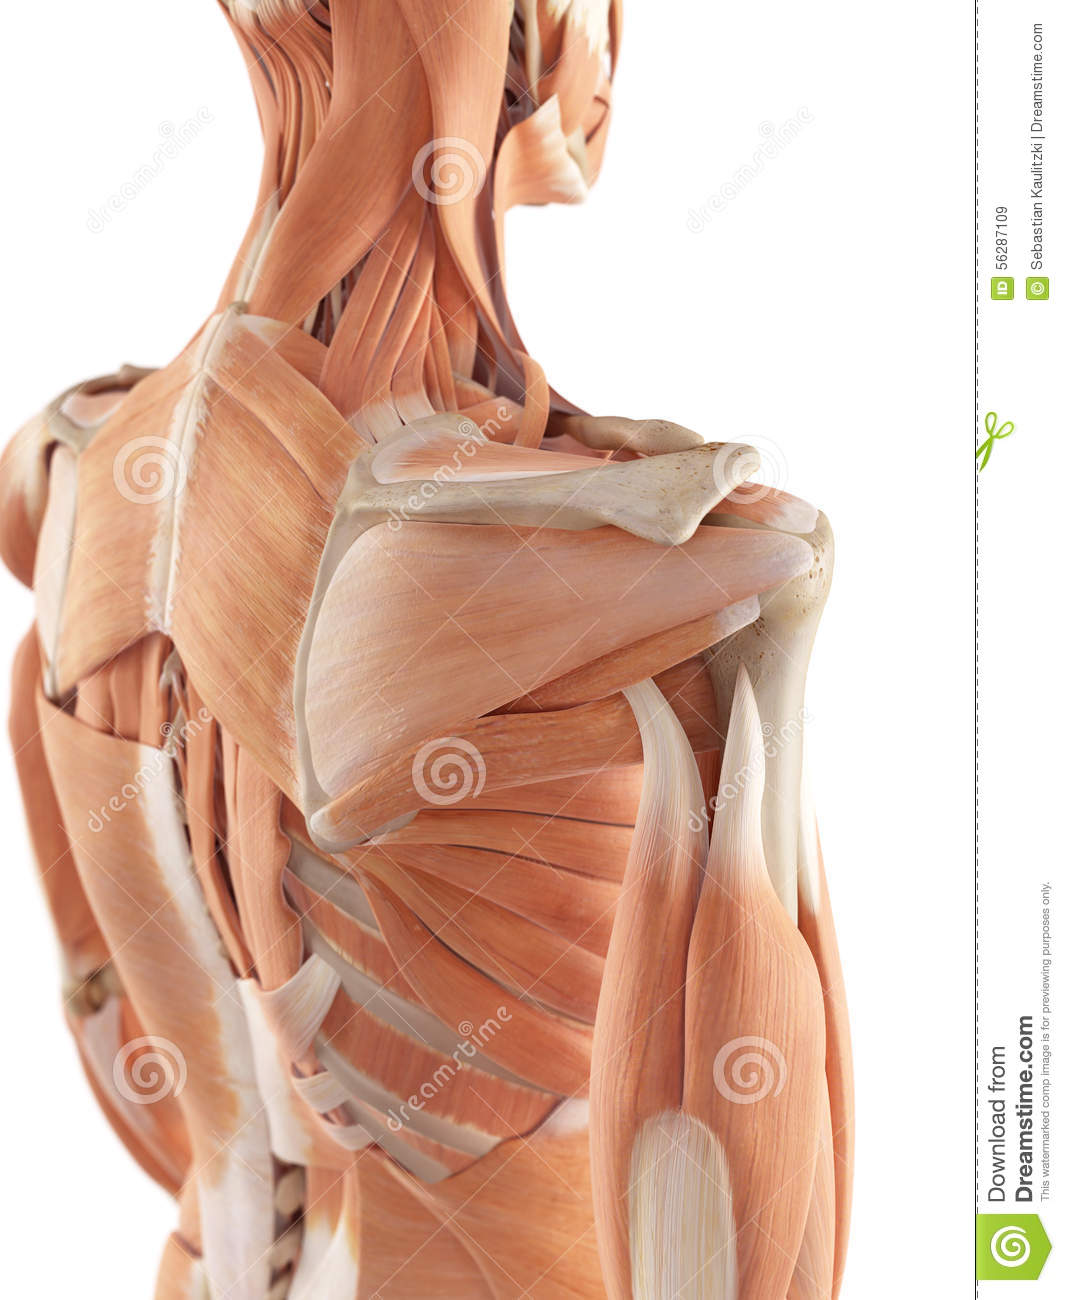 The Shoulder Muscles Stock Illustration Illustration Of Muscles